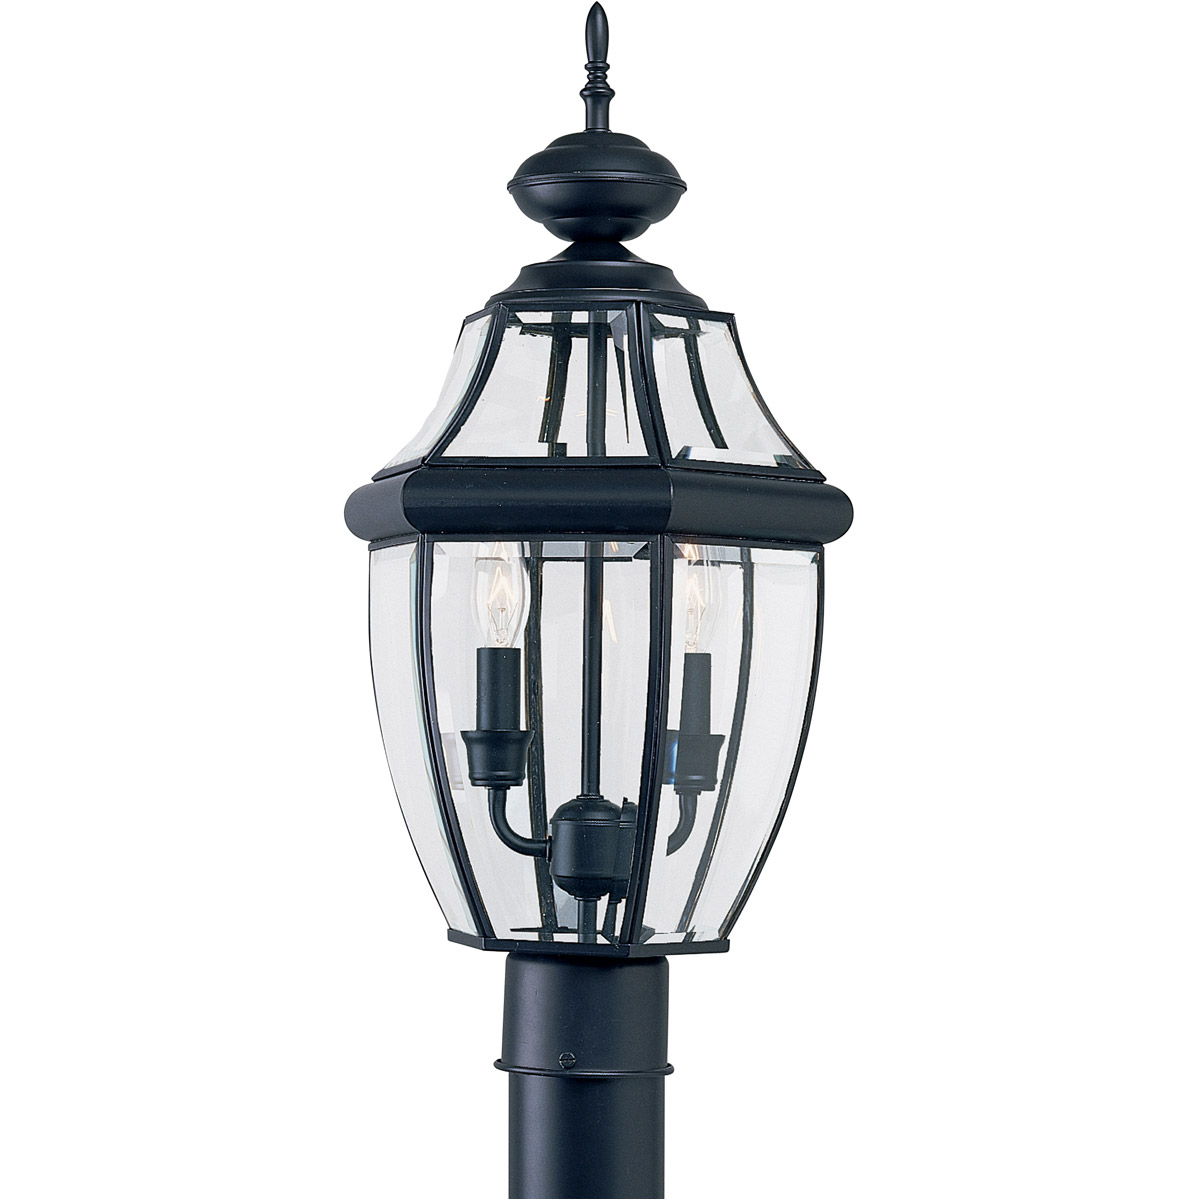 Sea Gull Lighting Lancaster 2 Light Outdoor Post Lantern in Black 8229-12 photo